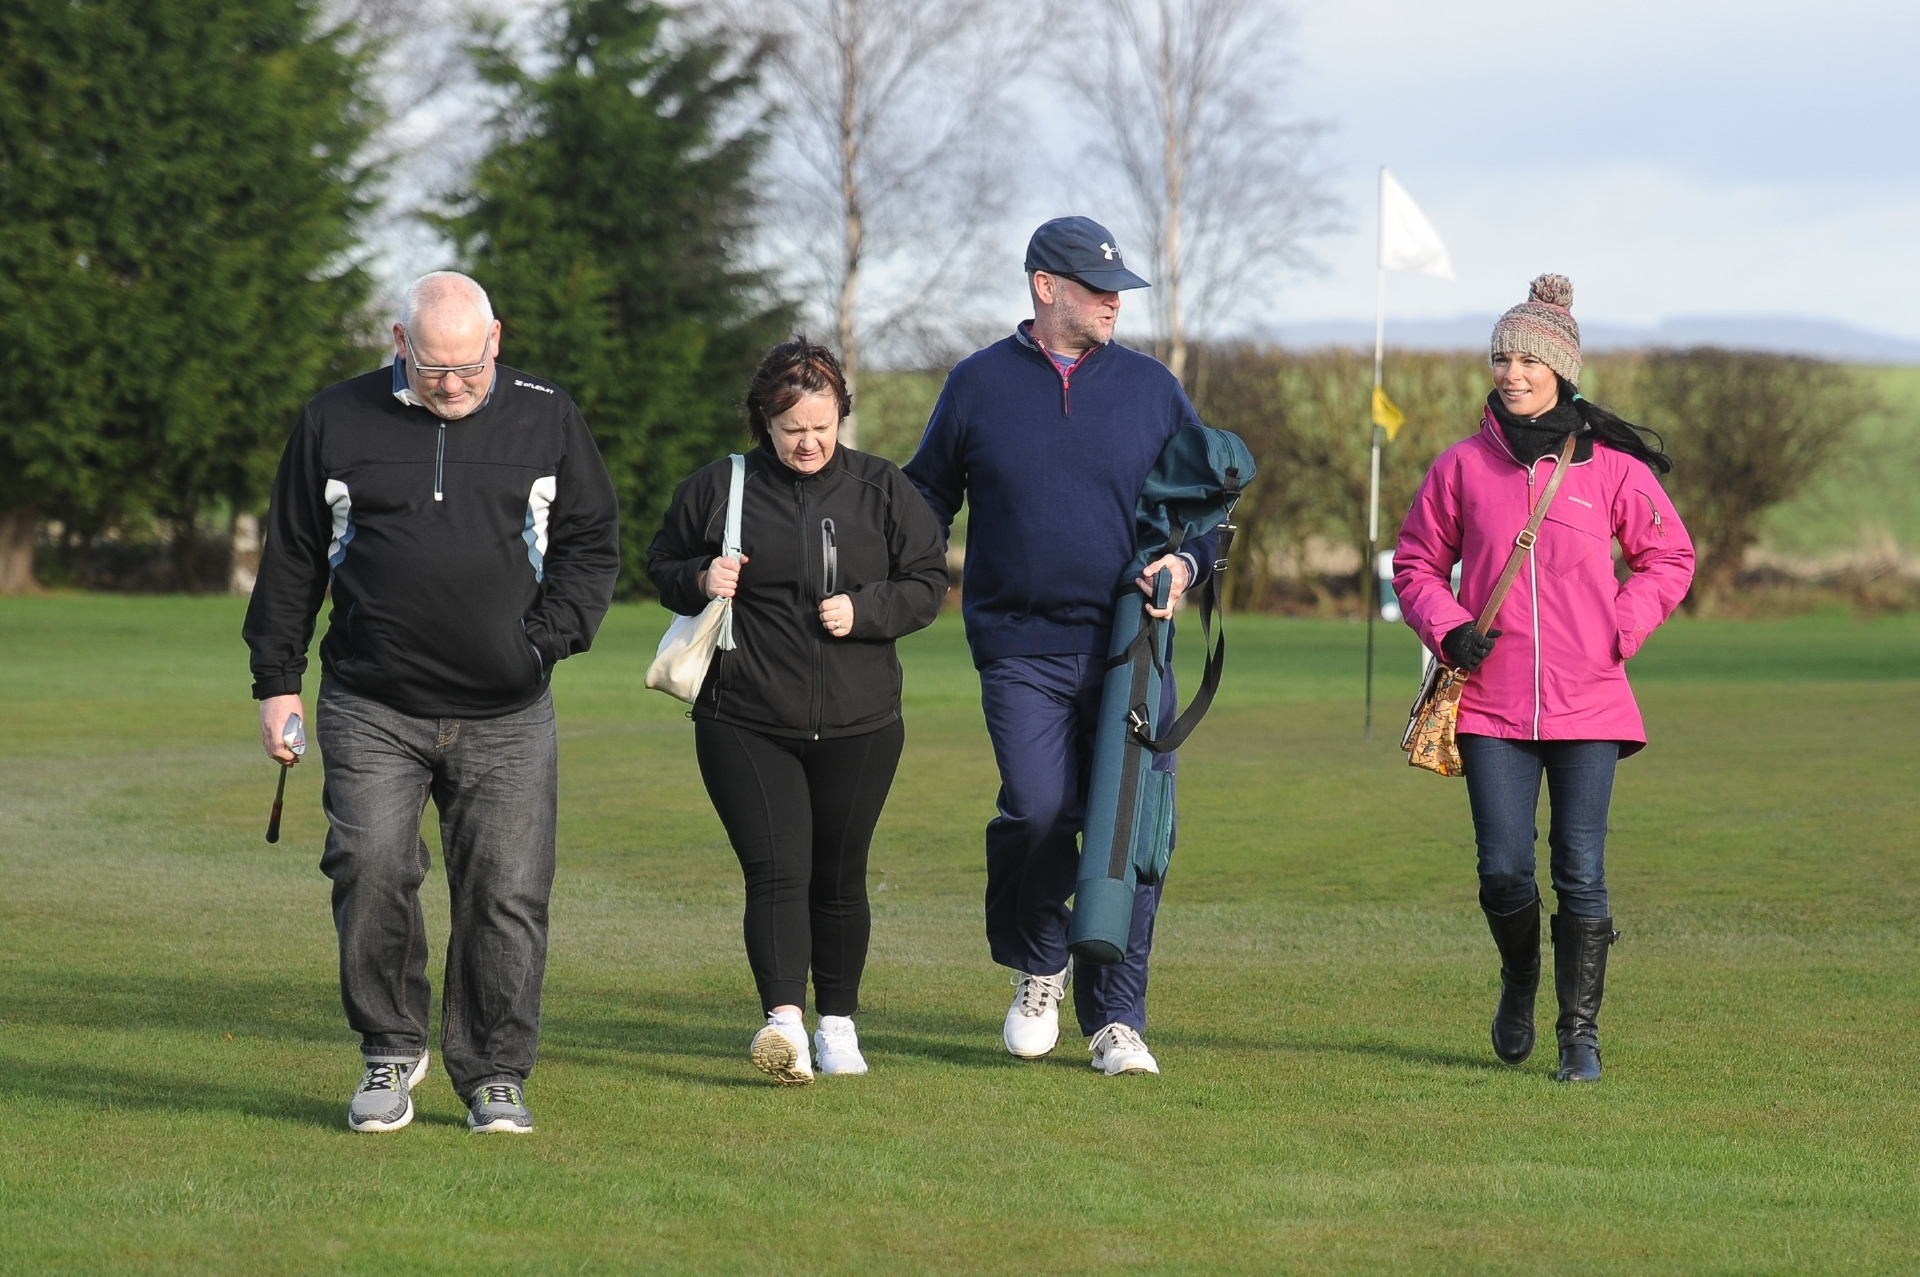 Derek Milne, Shelly Cunningham, Jim Gales and Gayle Ritchie on the practice course at Wellsgreen Golf Range, Windygates.